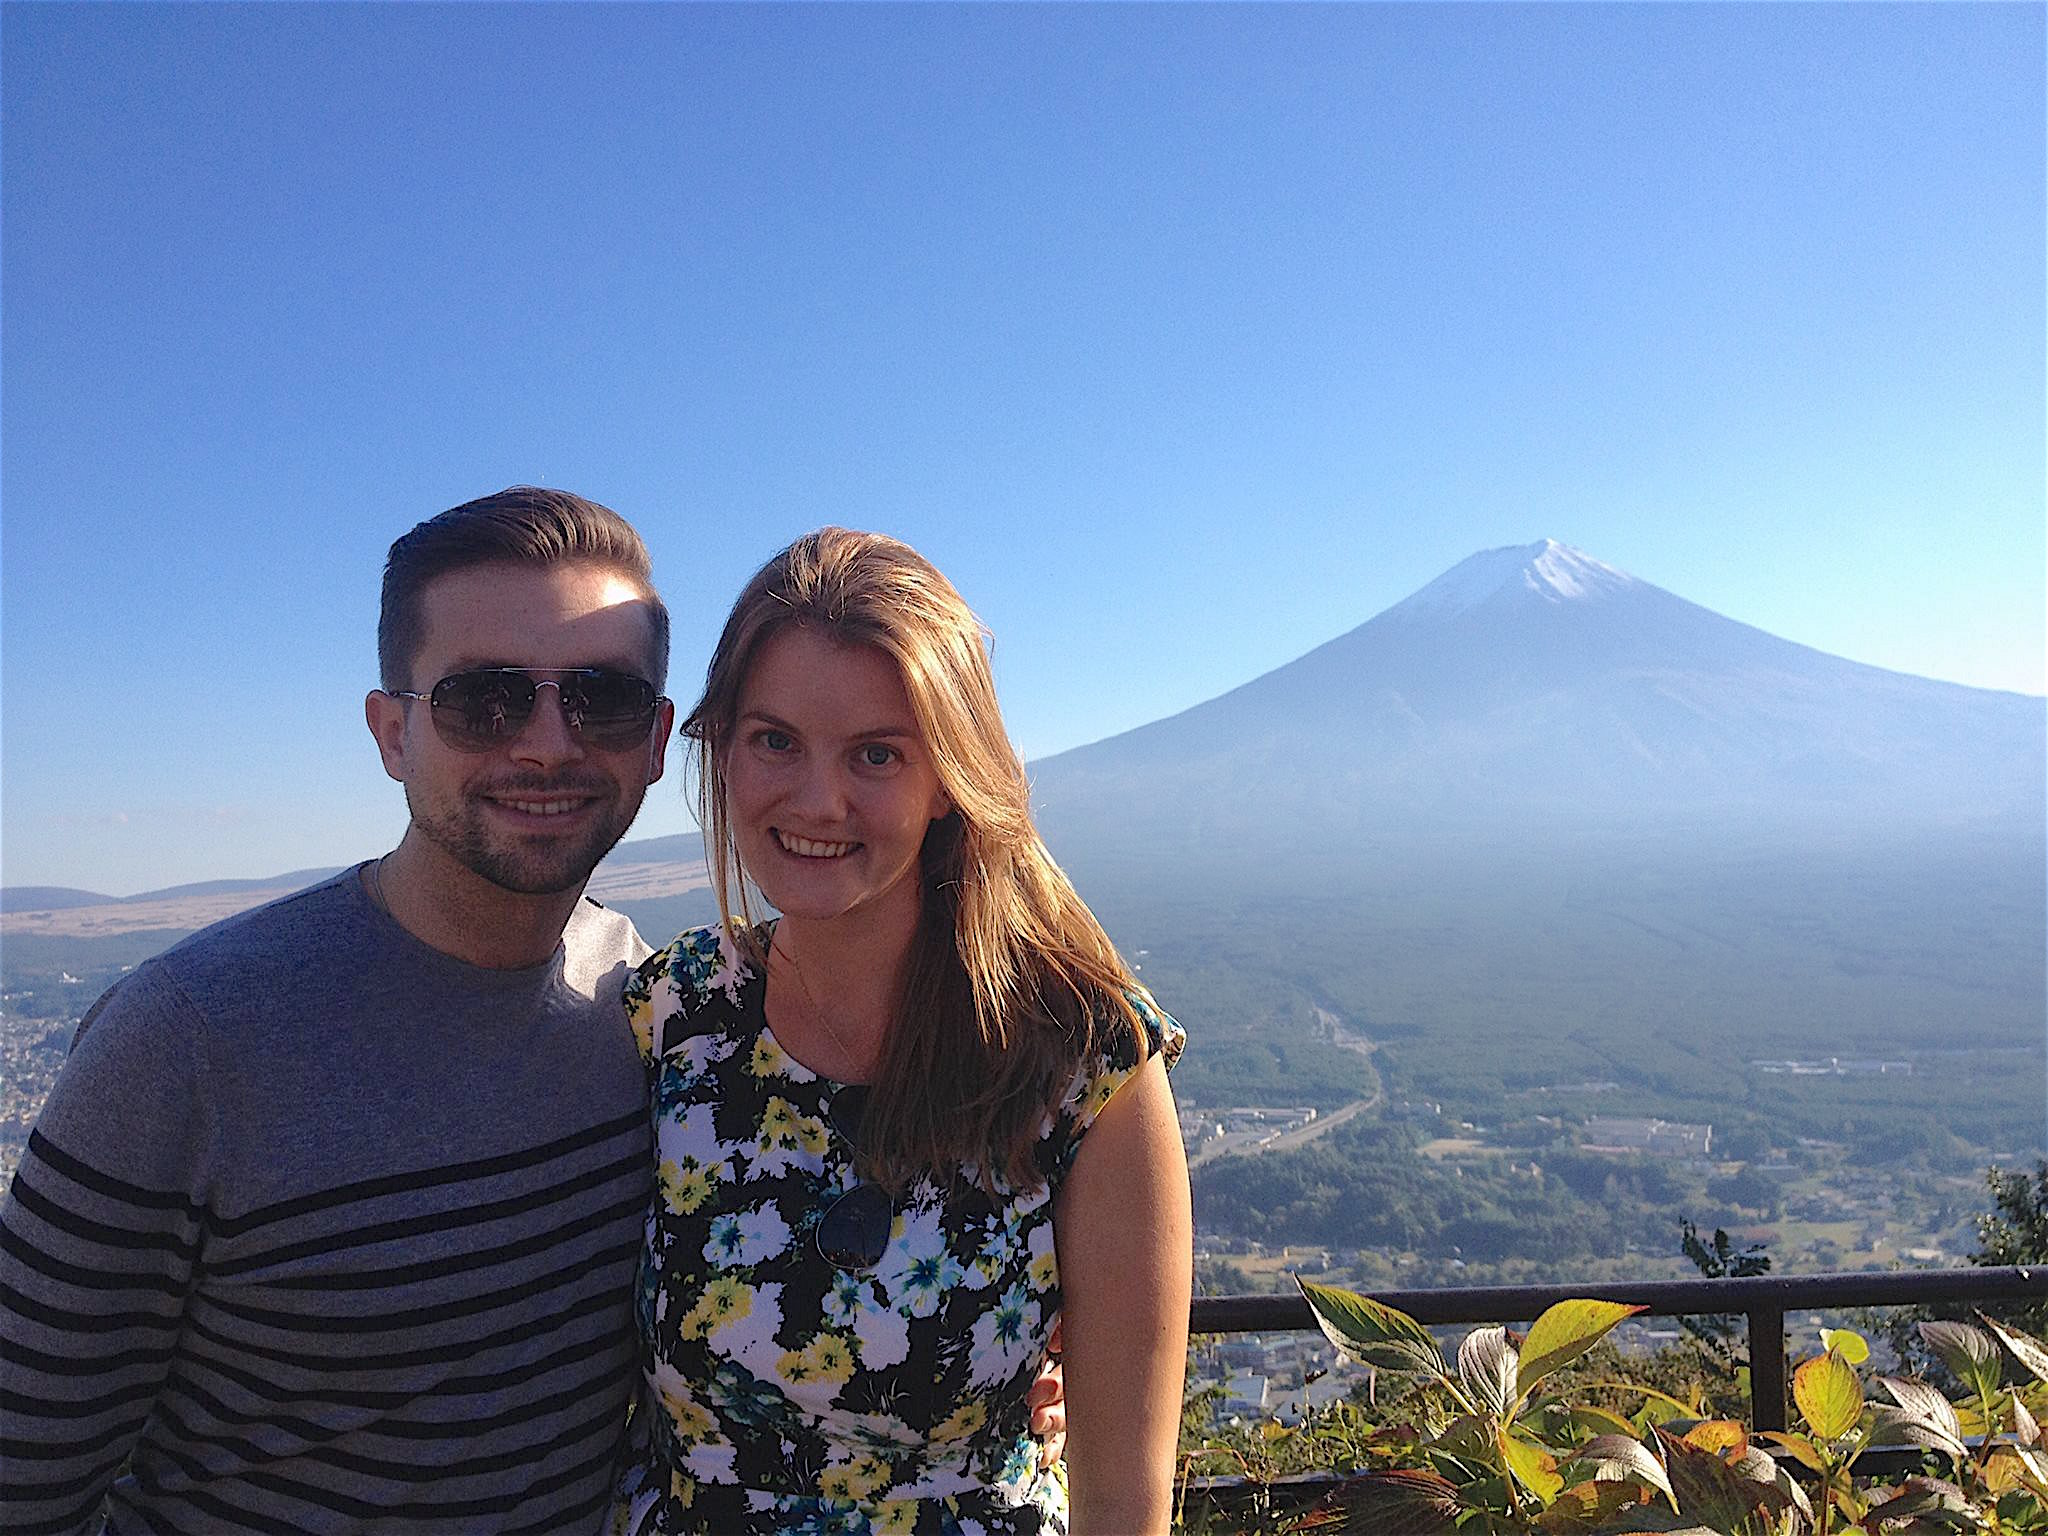 Michael and Stephanie in Japan